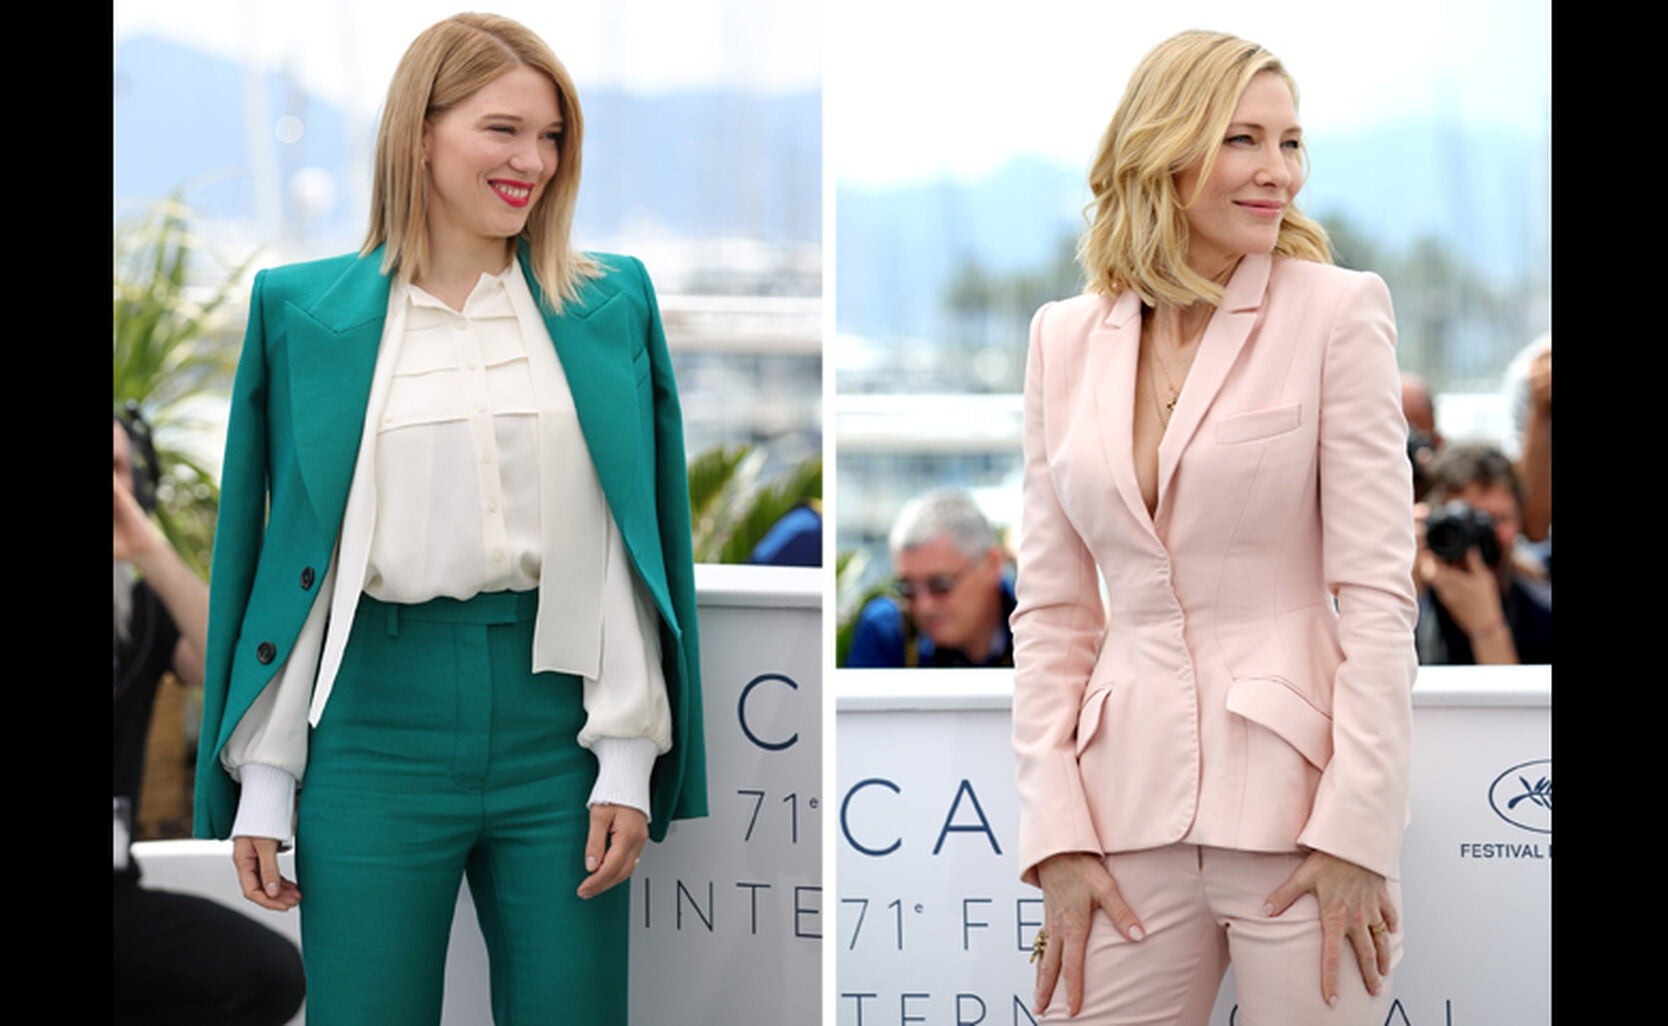 Lea Seydoux and Cate Blanchett